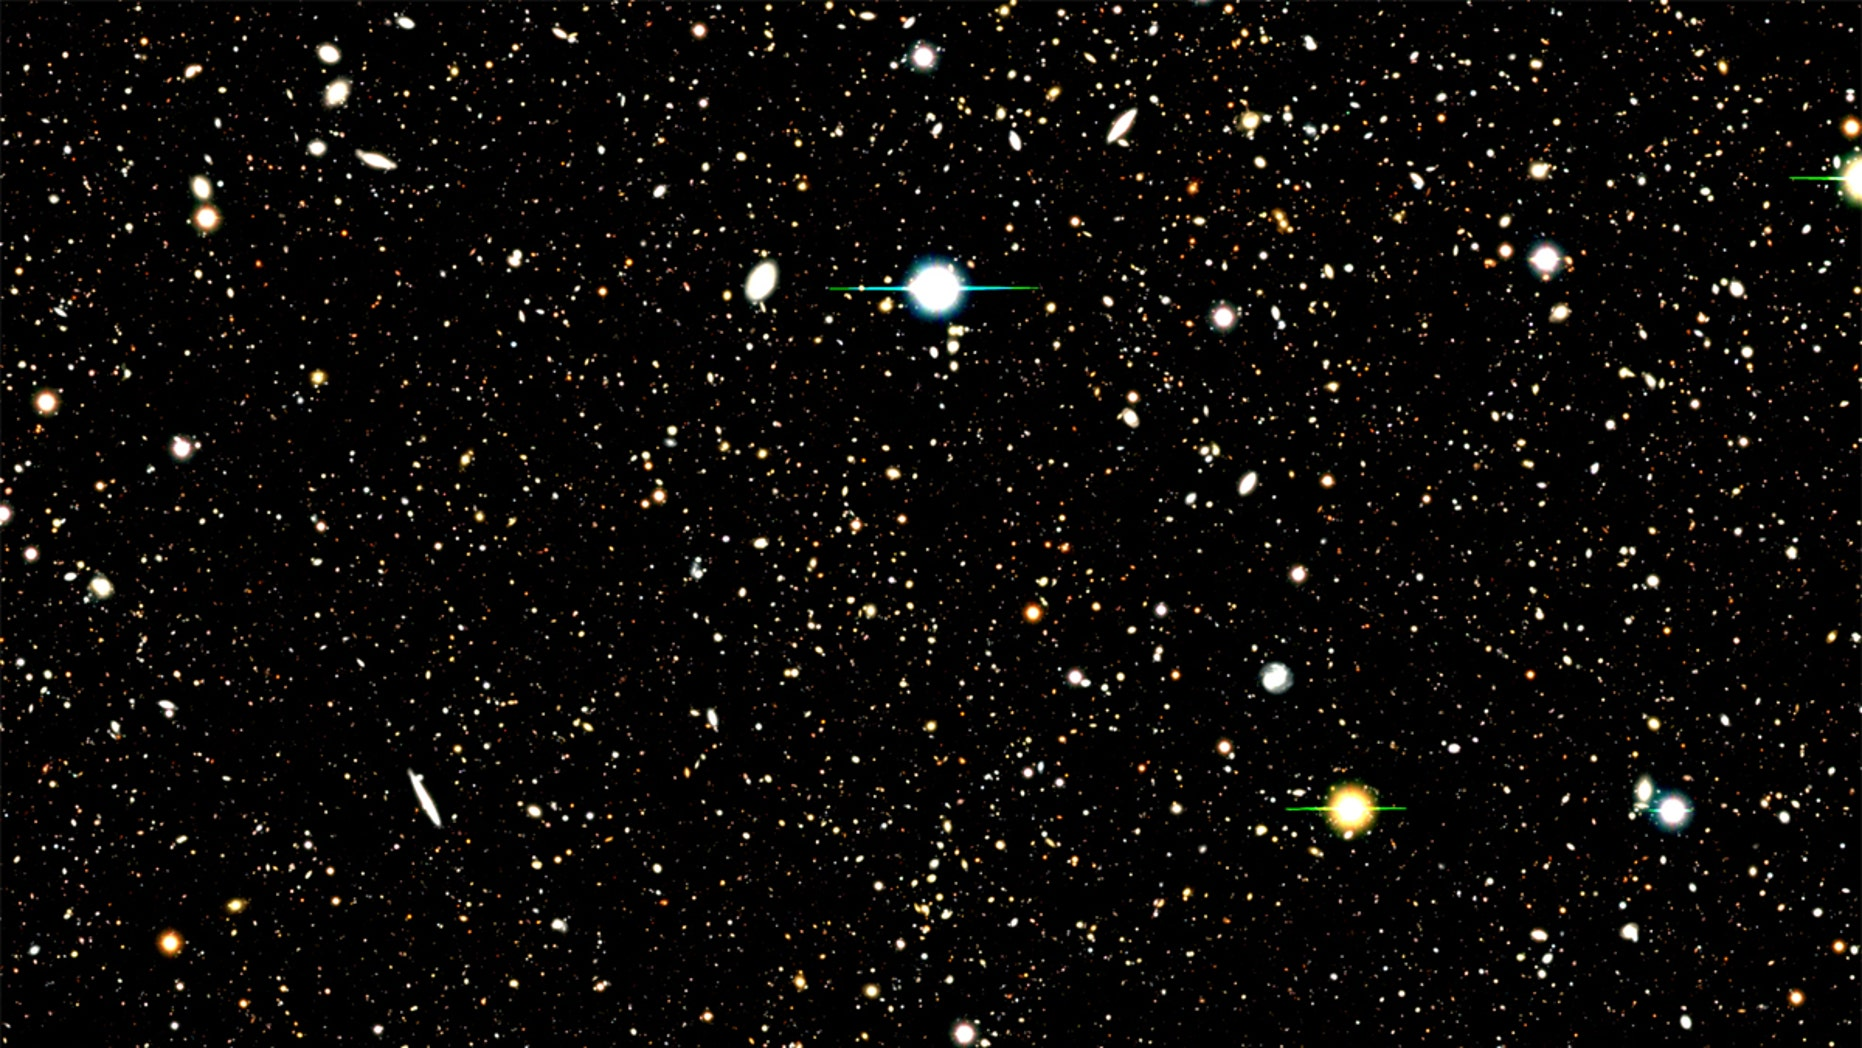 This image shows the results of a deep field survey by the Subaru Telescope. A new analysis used a Subaru deep field image to identify the location of nearly 1,300 distant galaxies. The analysis then combined the UV radiation from those galaxies to learn about their composition. A few bright supernovas can also be seen in the image.